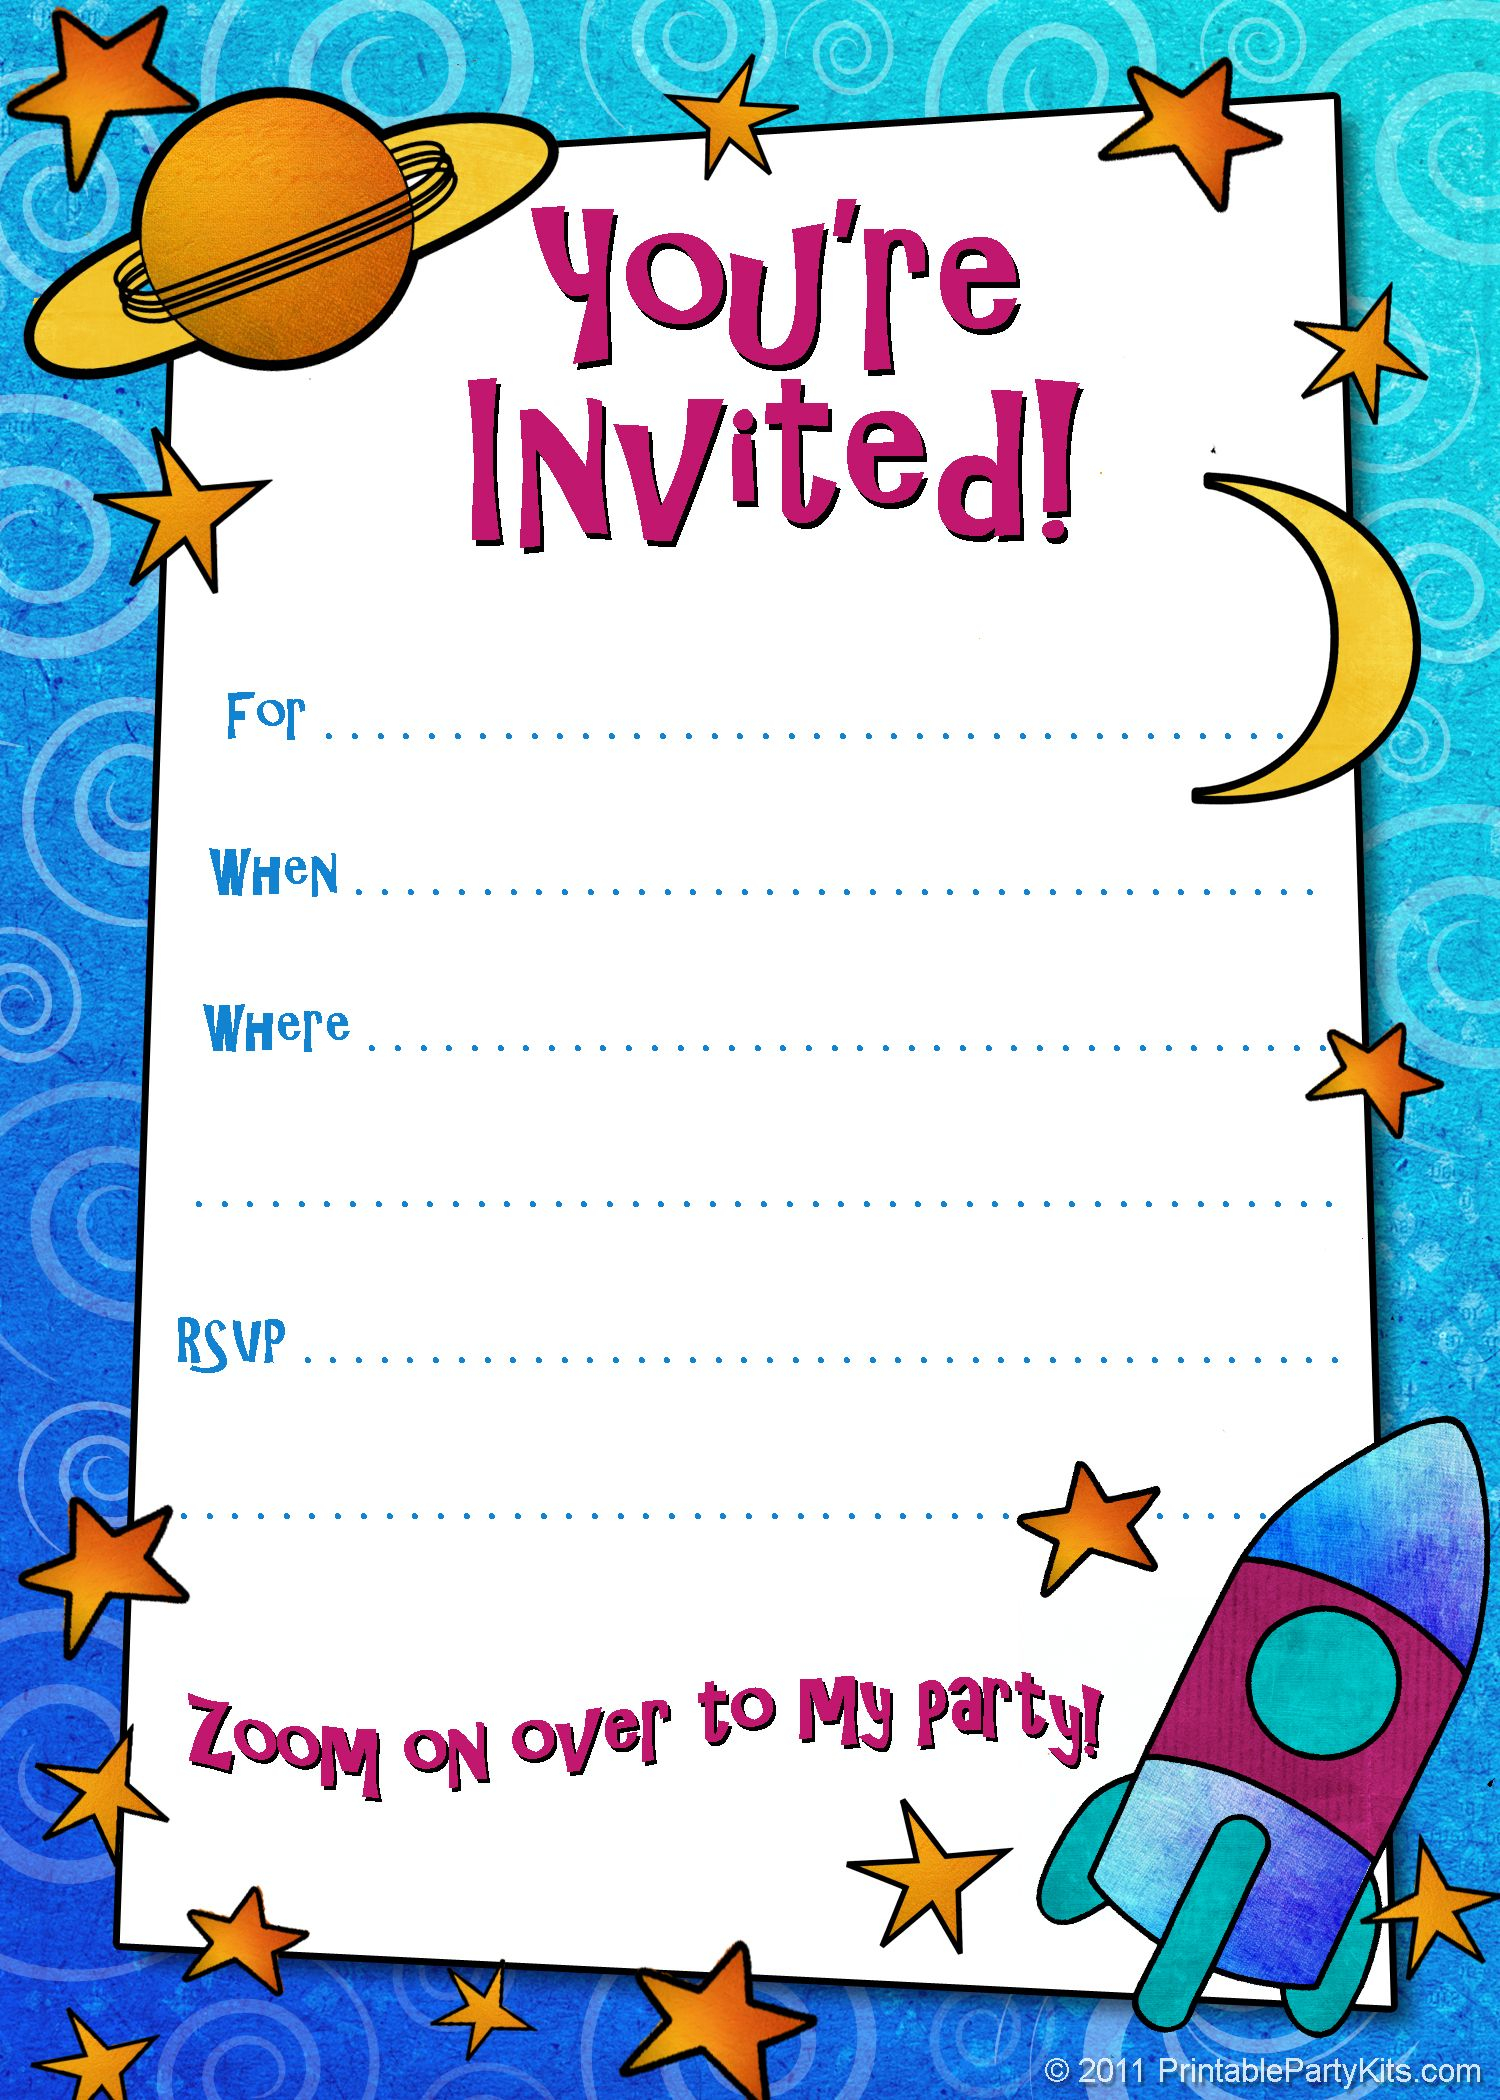 Free Printable Boys Birthday Party Invitations Pertaining To Dimensions 1500 X 2100